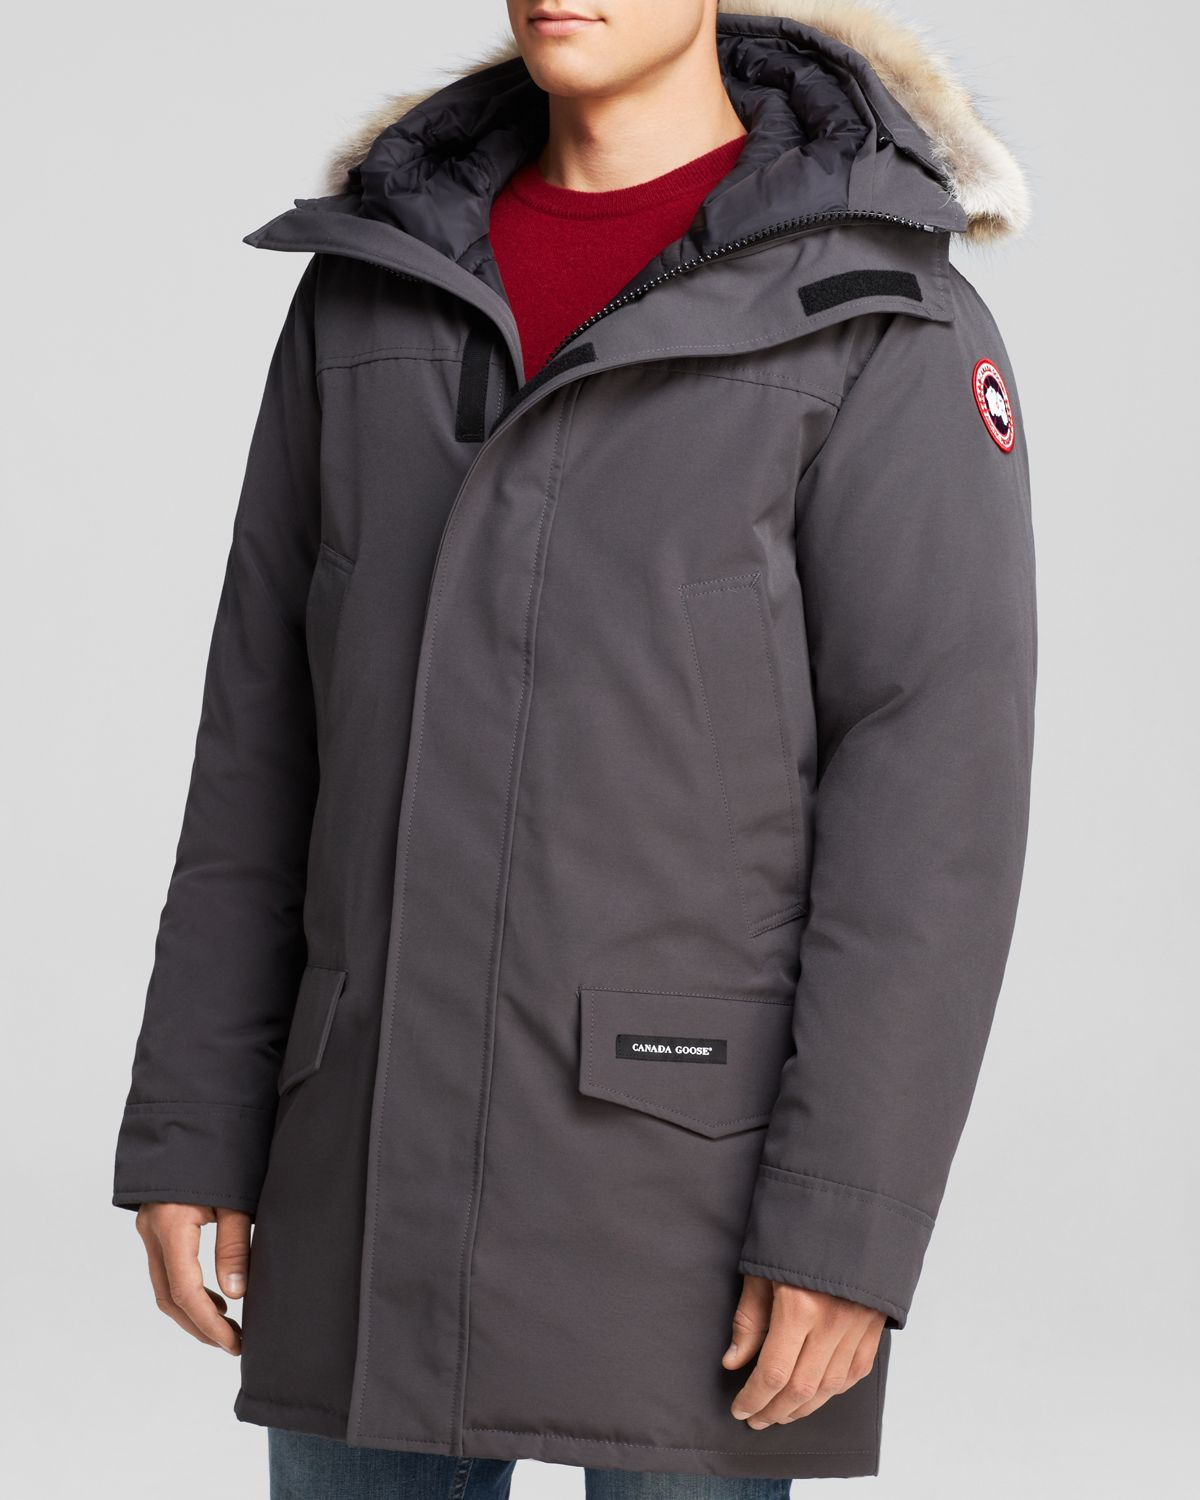 Canada Goose Langford Parka With Fur Hood In Gray For Men